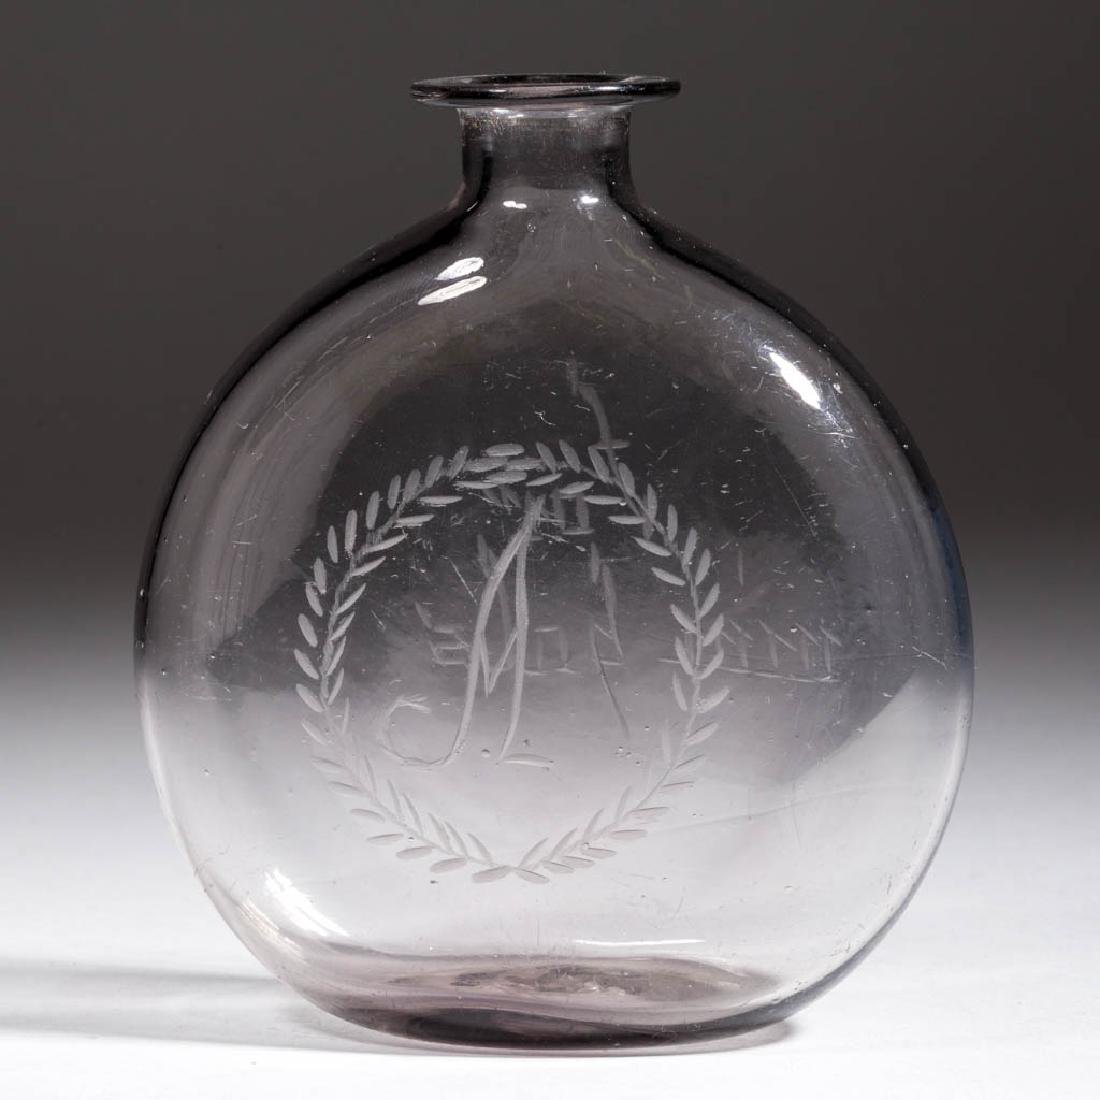 FREE-BLOWN AND ENGRAVED POCKET FLASK